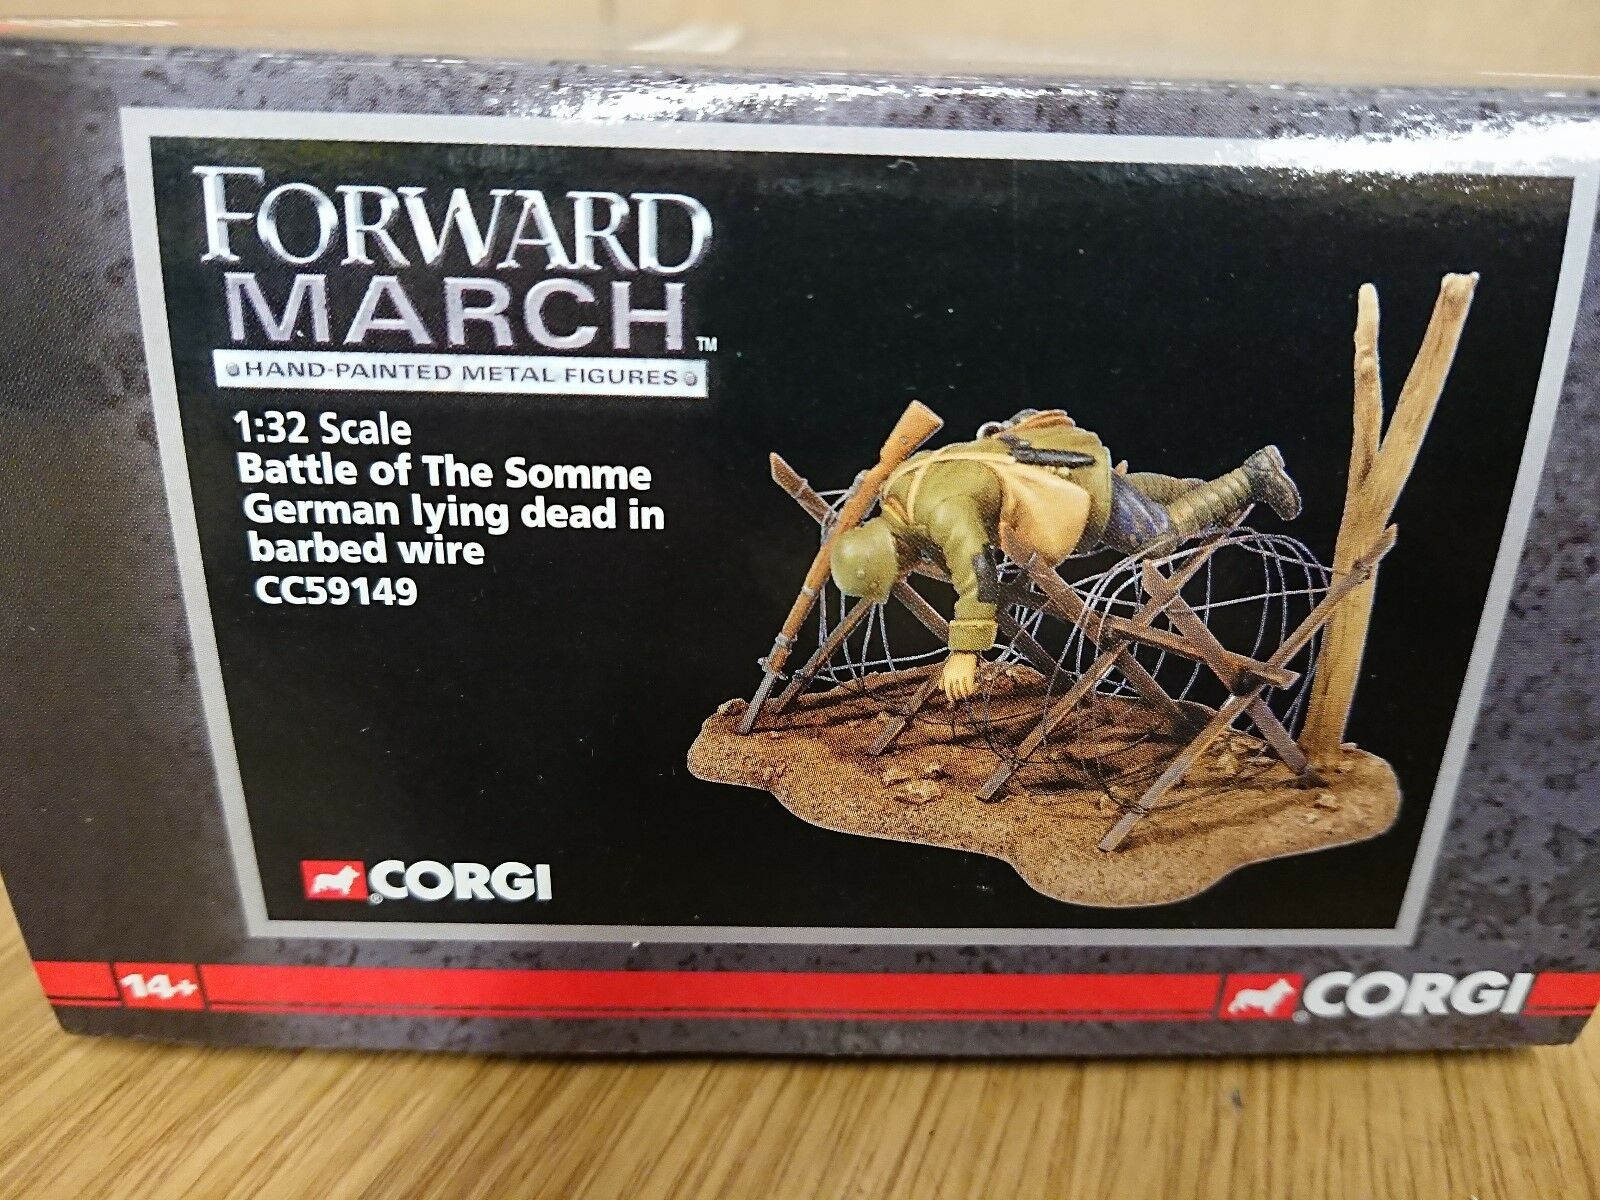 Corgi CC59149 Forward March Battle of the Somme Somme Somme German Soldier Ltd Edit. of 1250 be814a